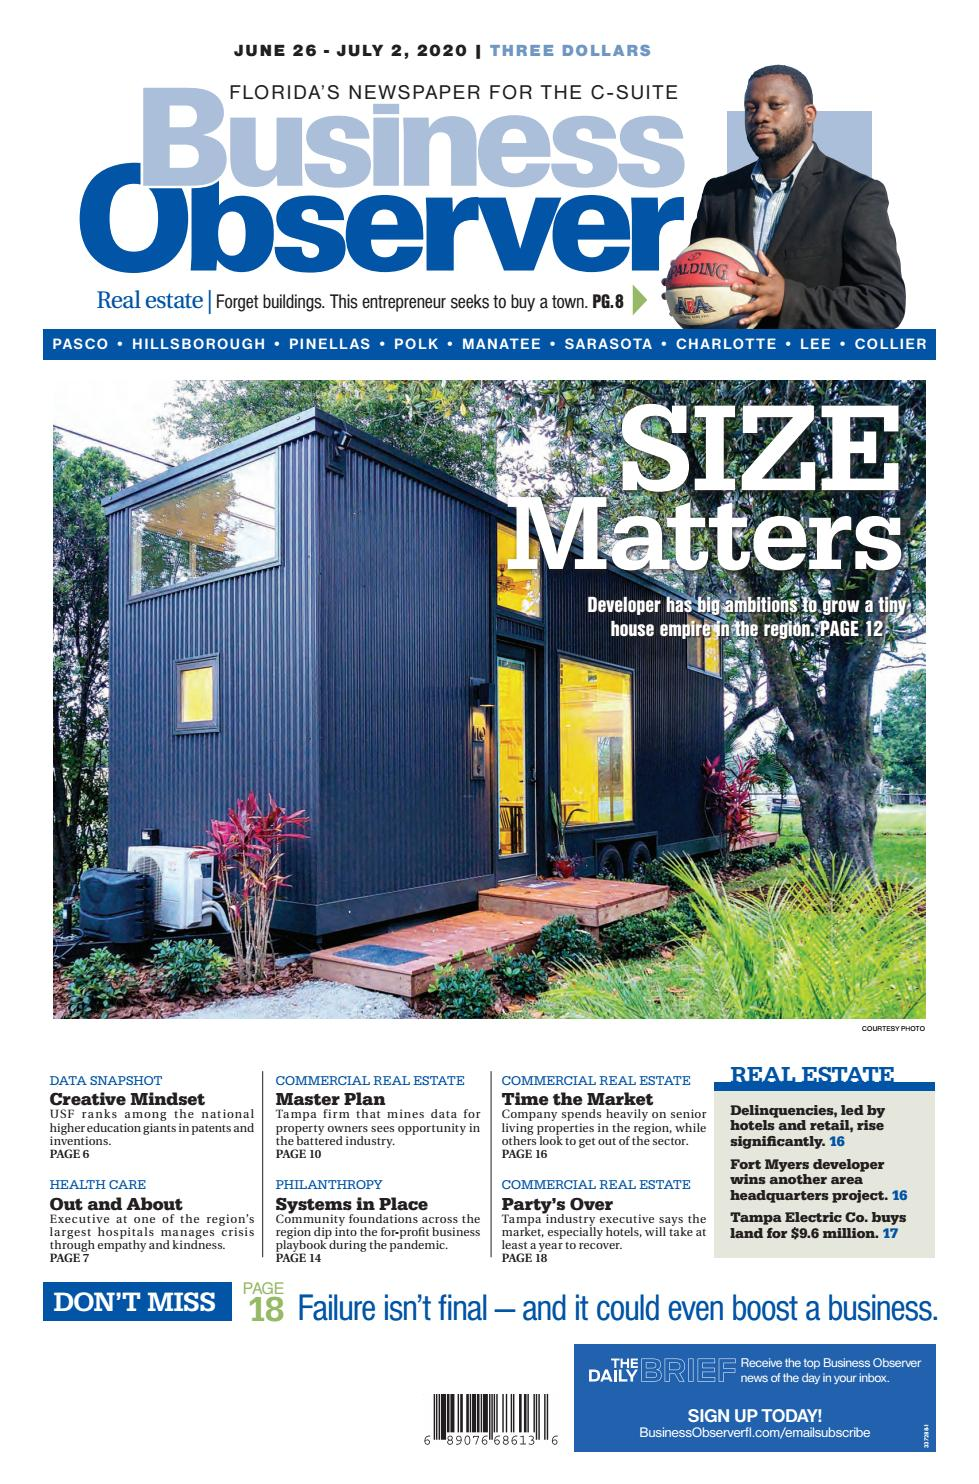 Business Observer 6 26 20 By The Observer Group Inc Issuu